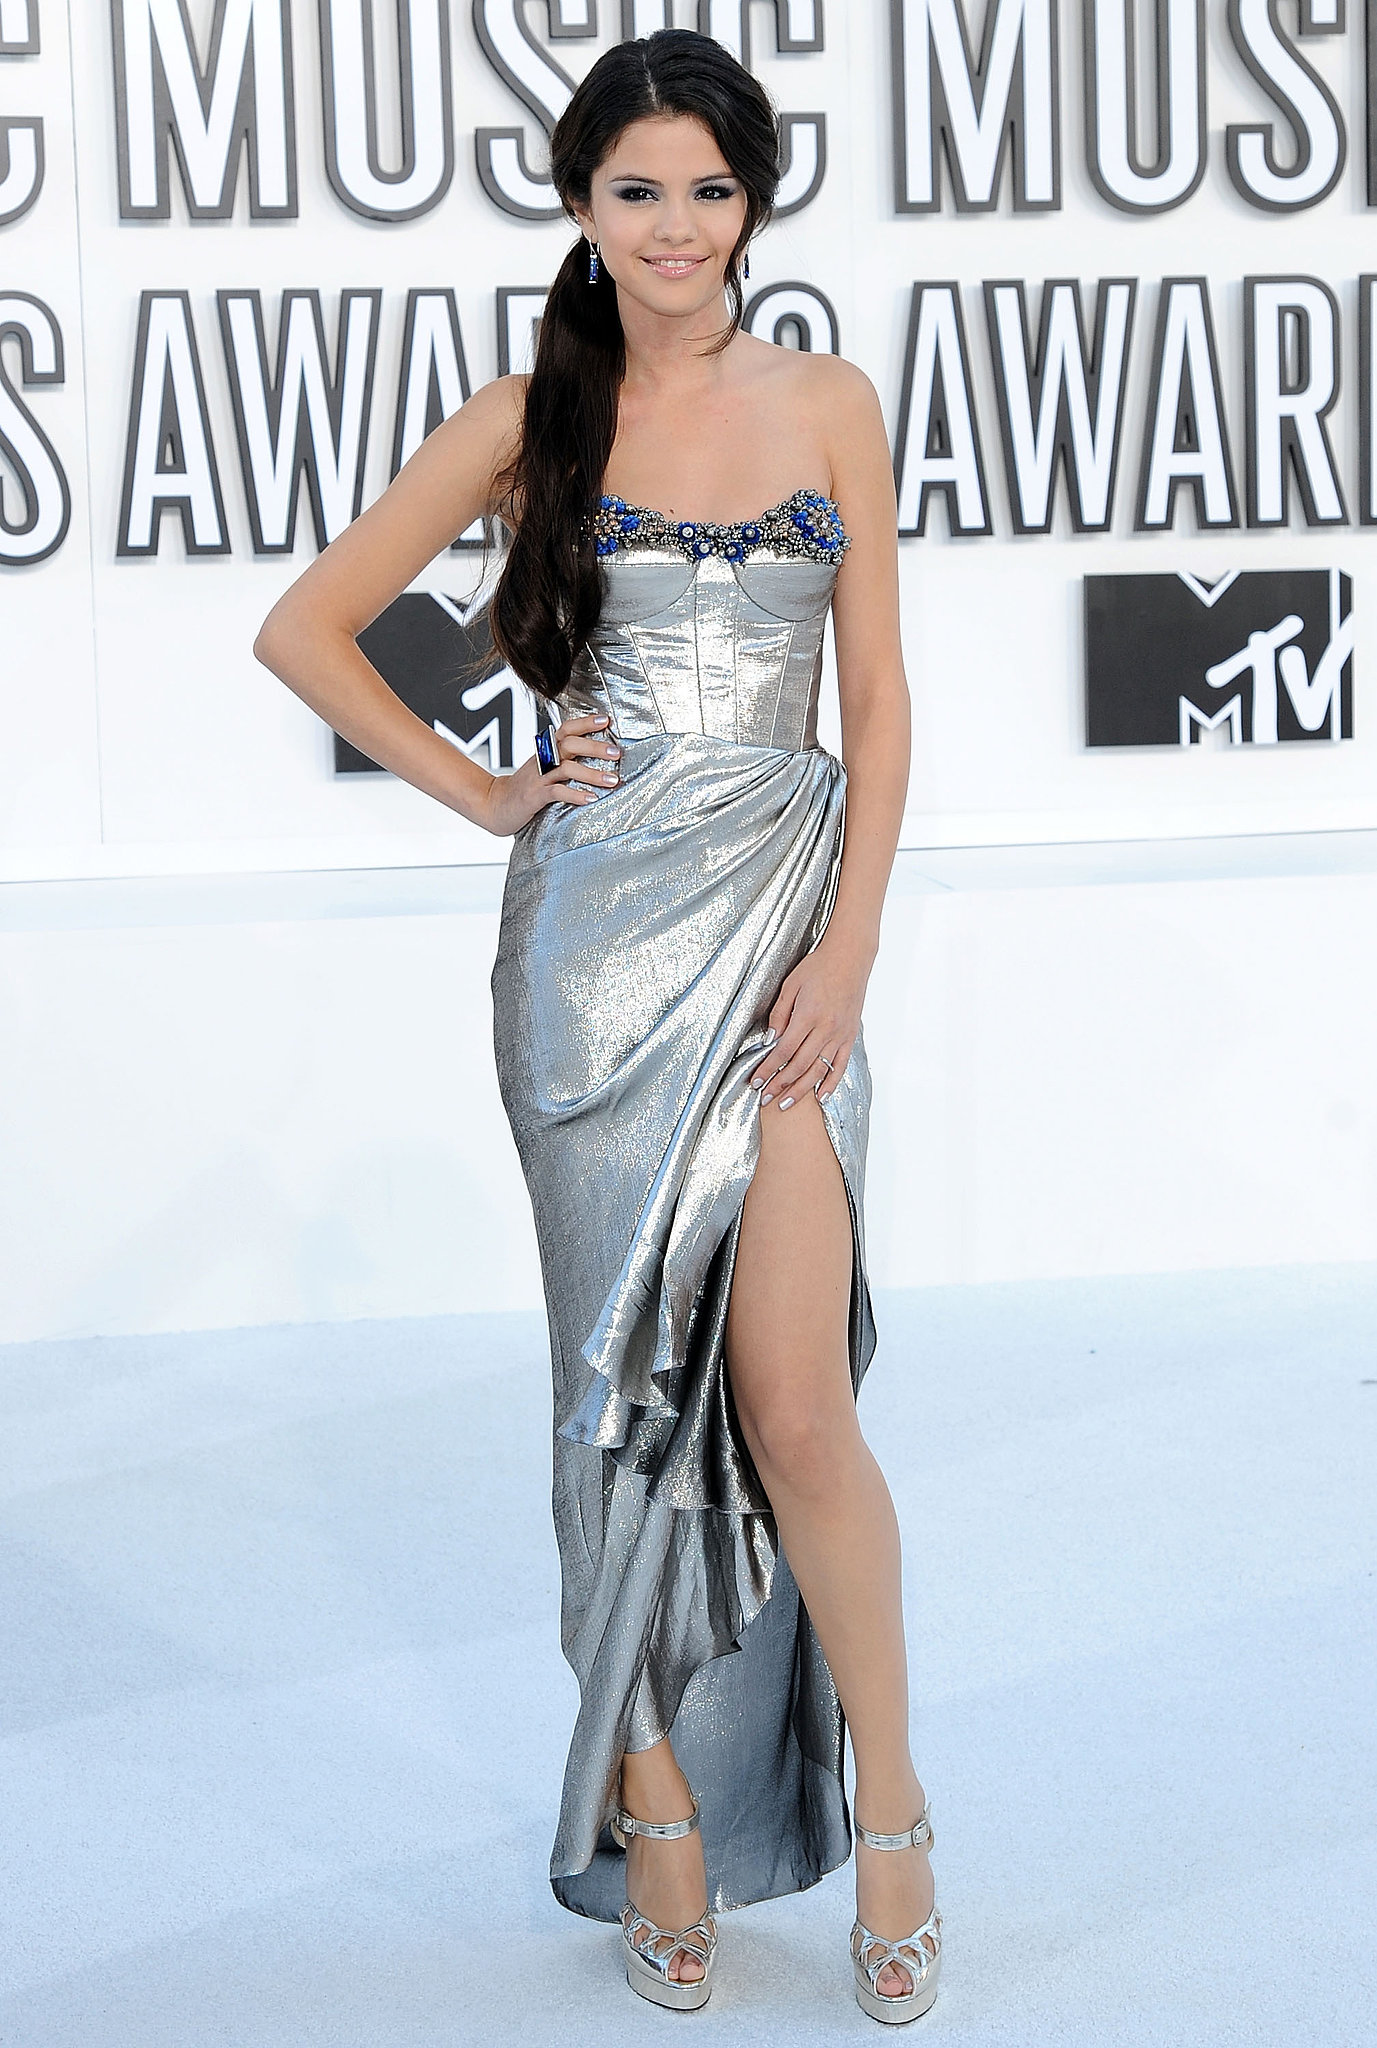 In 2010, Selena Gomez arrived on the carpet in a metallic number.